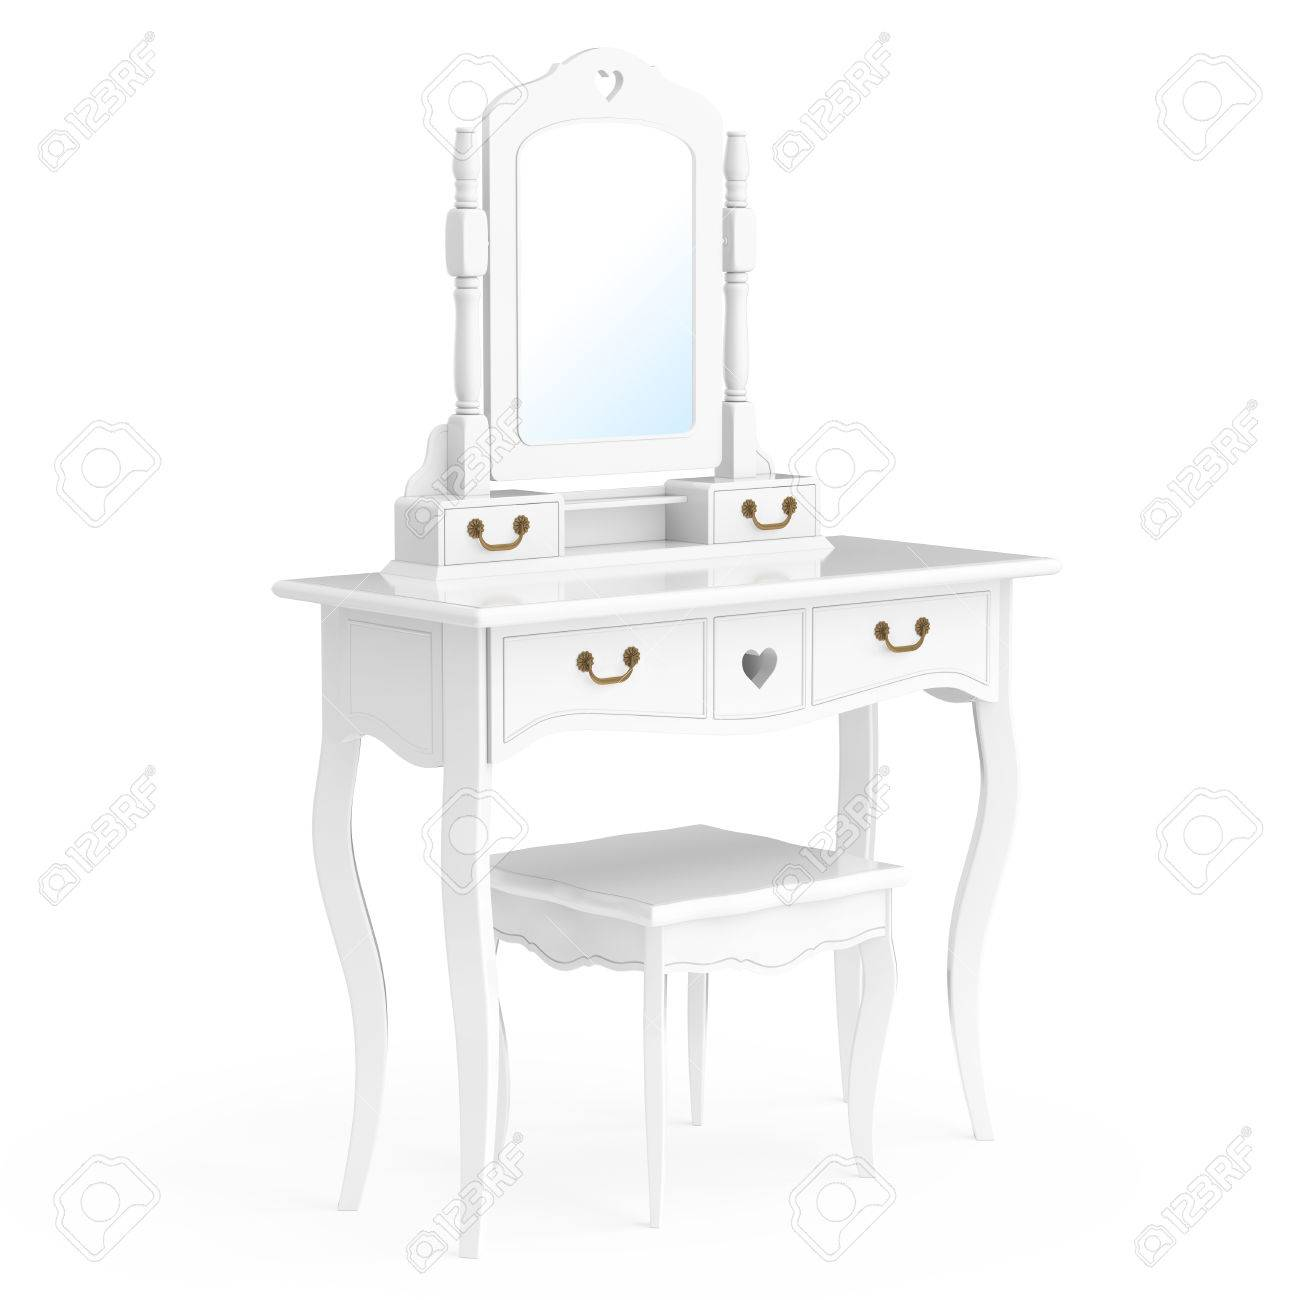 Antique Bedroom Vanity Table With Stool And Mirror On A White Background.  3d Rendering Stock